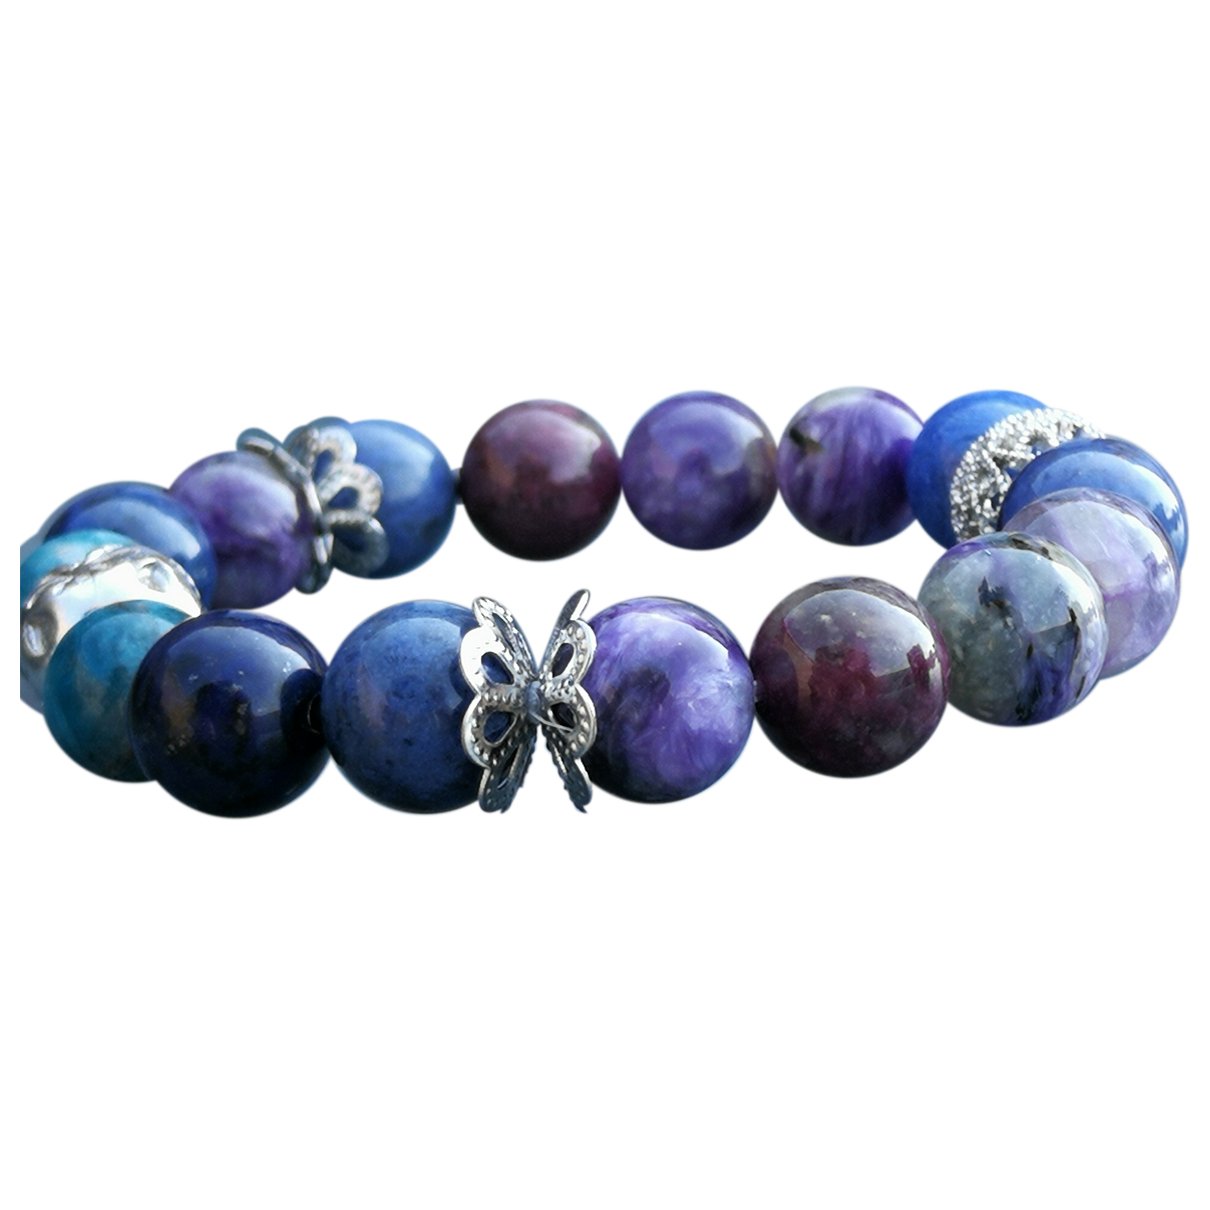 Non Signe / Unsigned \N Armband in  Bunt Perlen